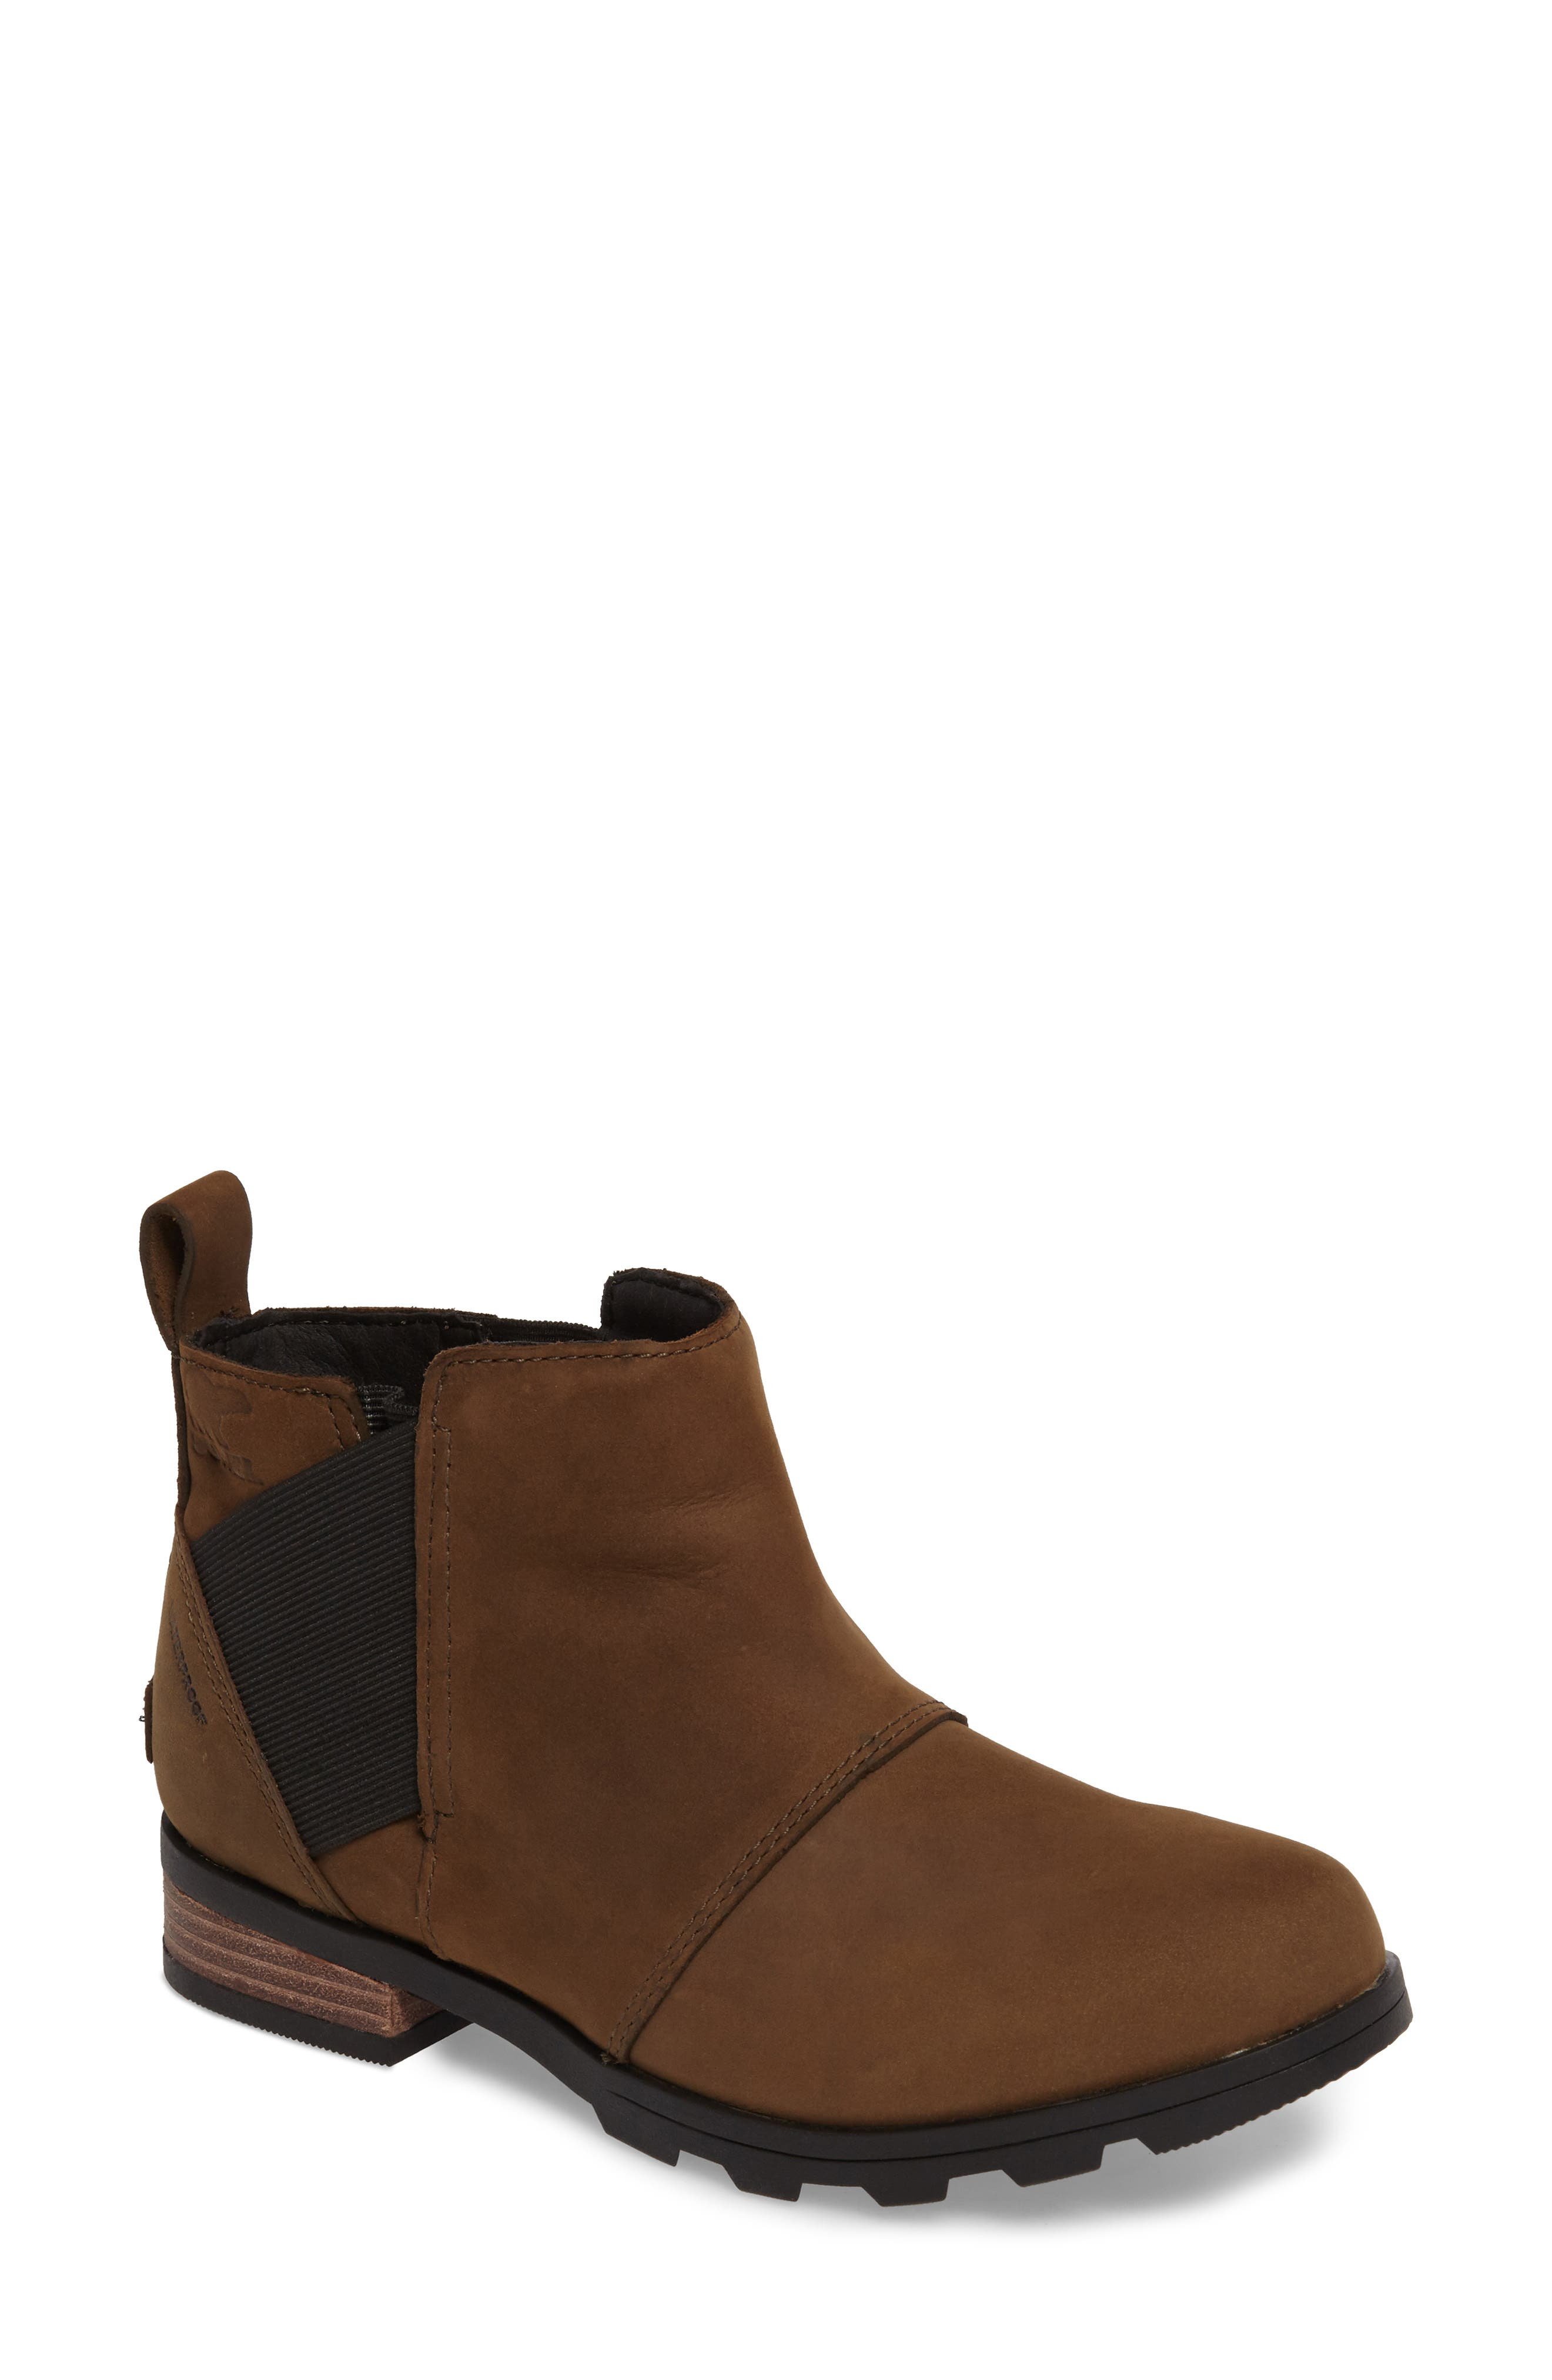 Main Image - Sorel Emelie Waterproof Chelsea Boot (Women)